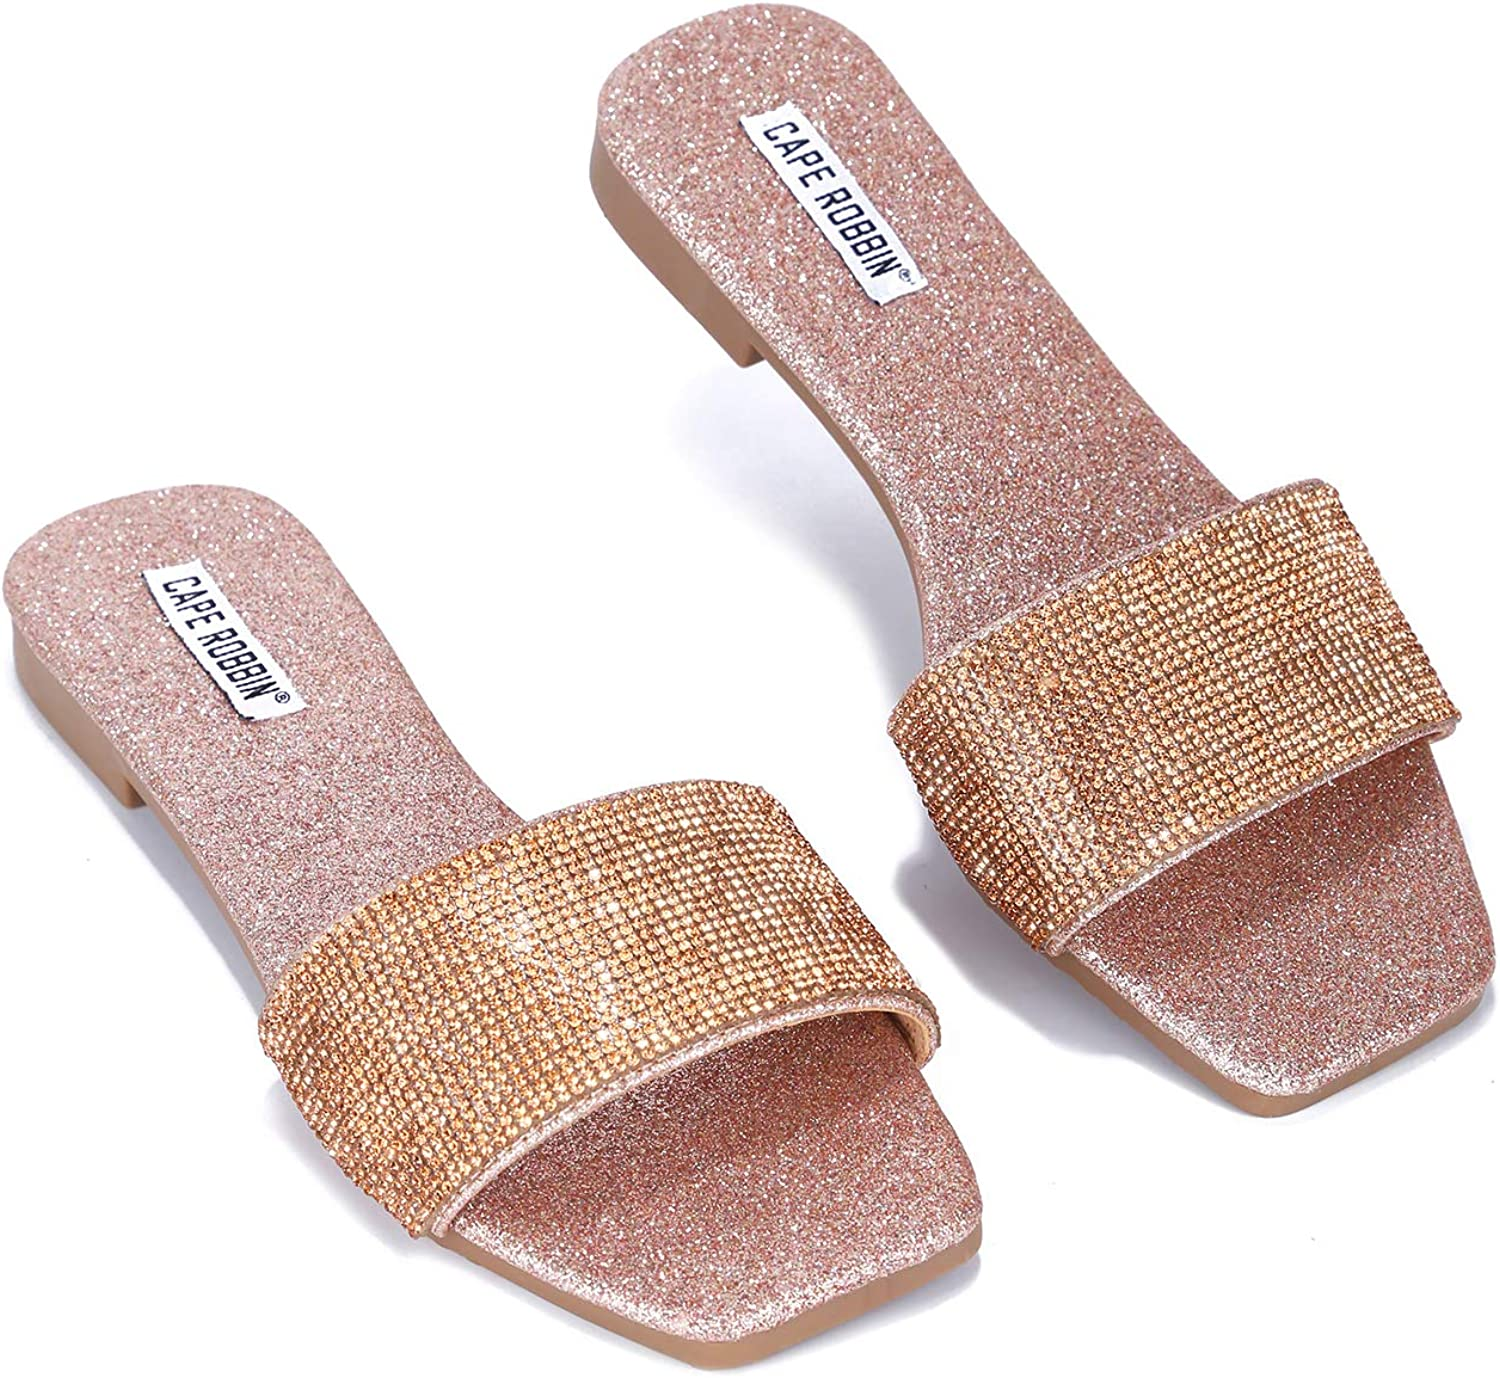 Cape Robbin Zala Flat Sandals Slides for Women, Studded Womens Mules Slip On Shoes with Faux Rhinestones